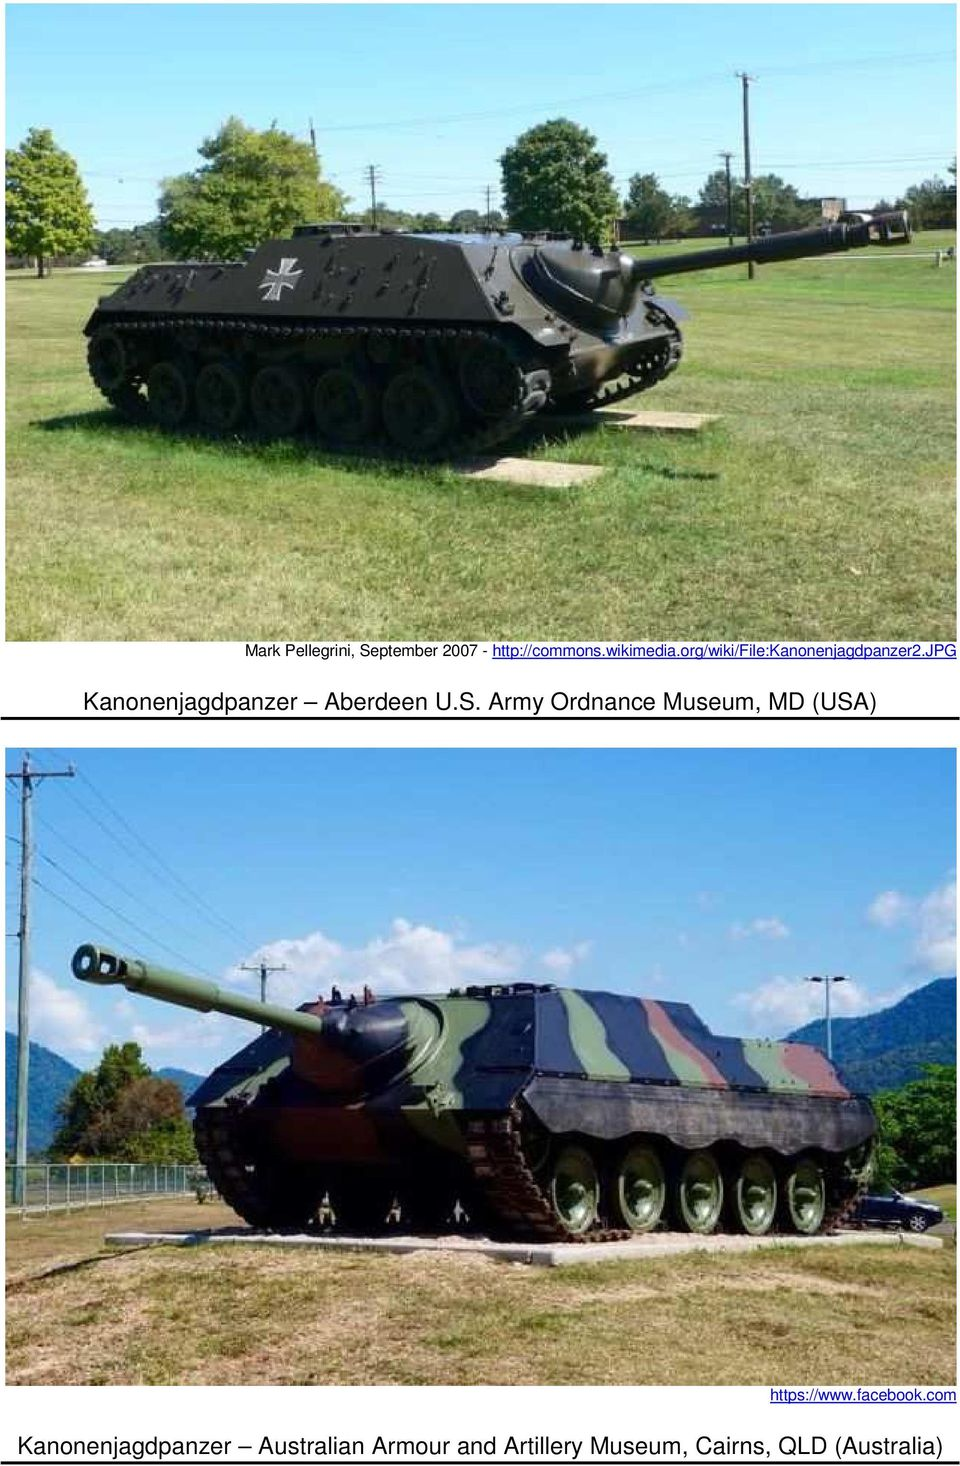 S. Army Ordnance Museum, MD (USA) https://www.facebook.